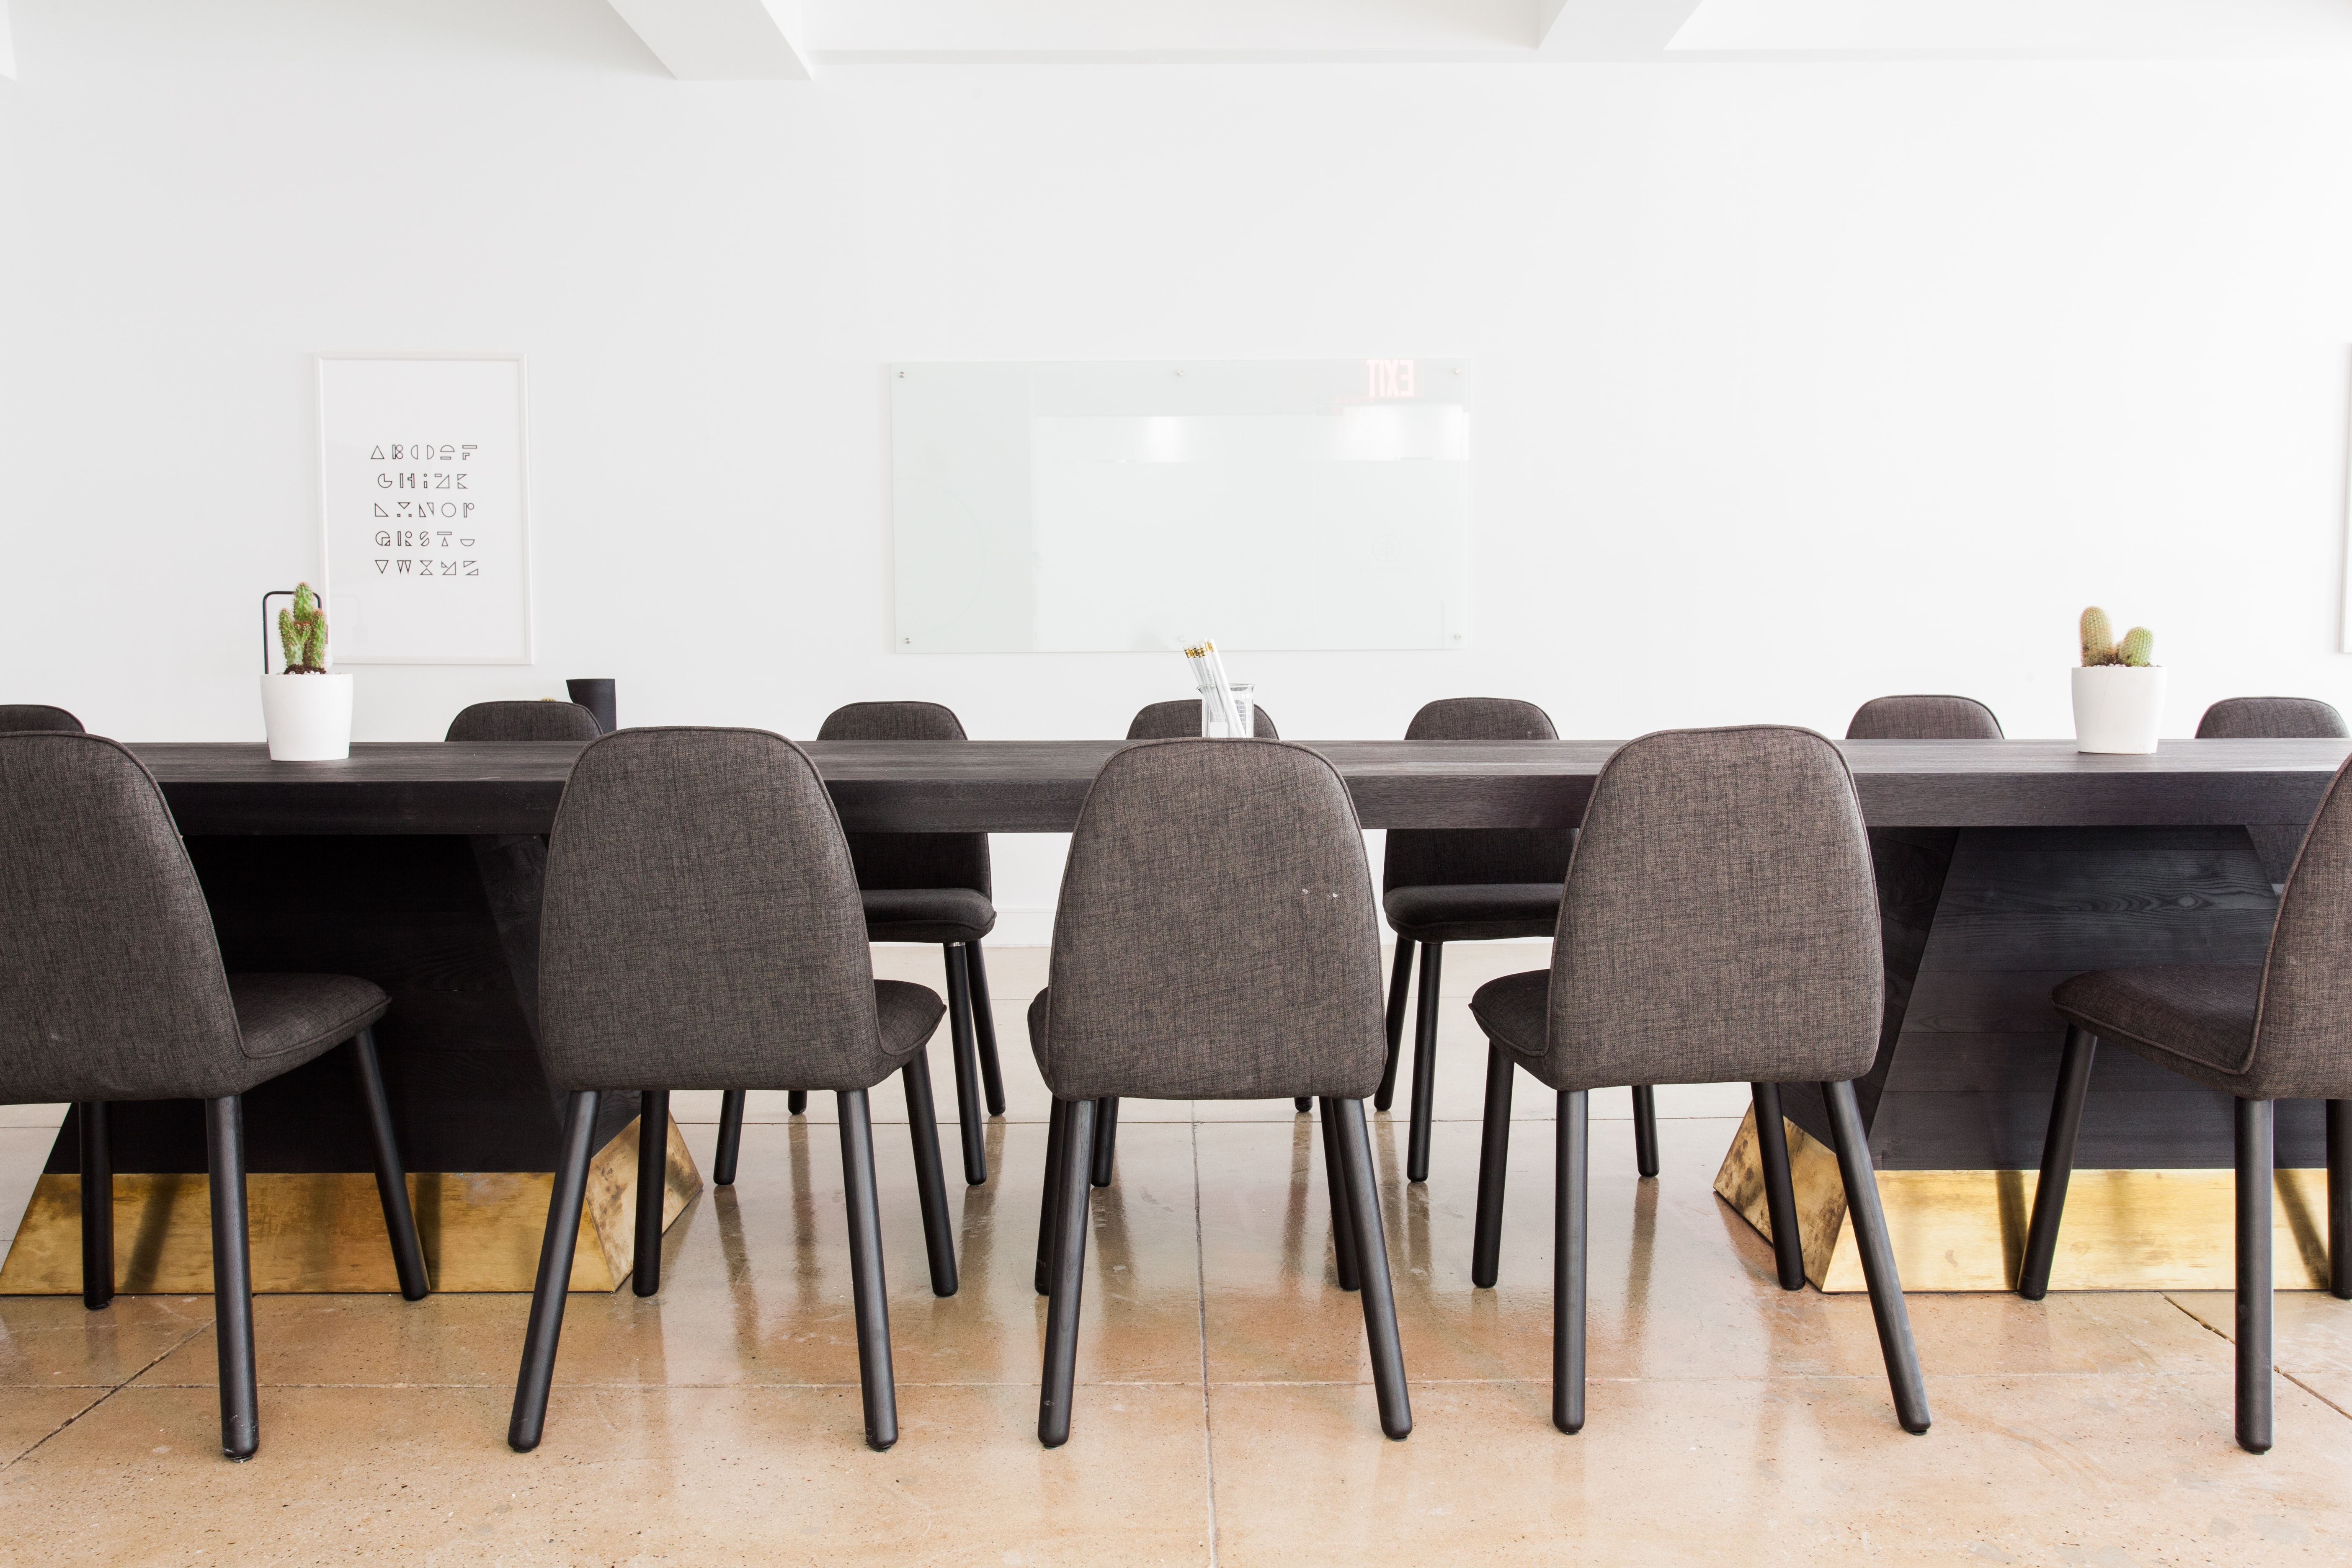 A row of chairs at a long table in a conference room